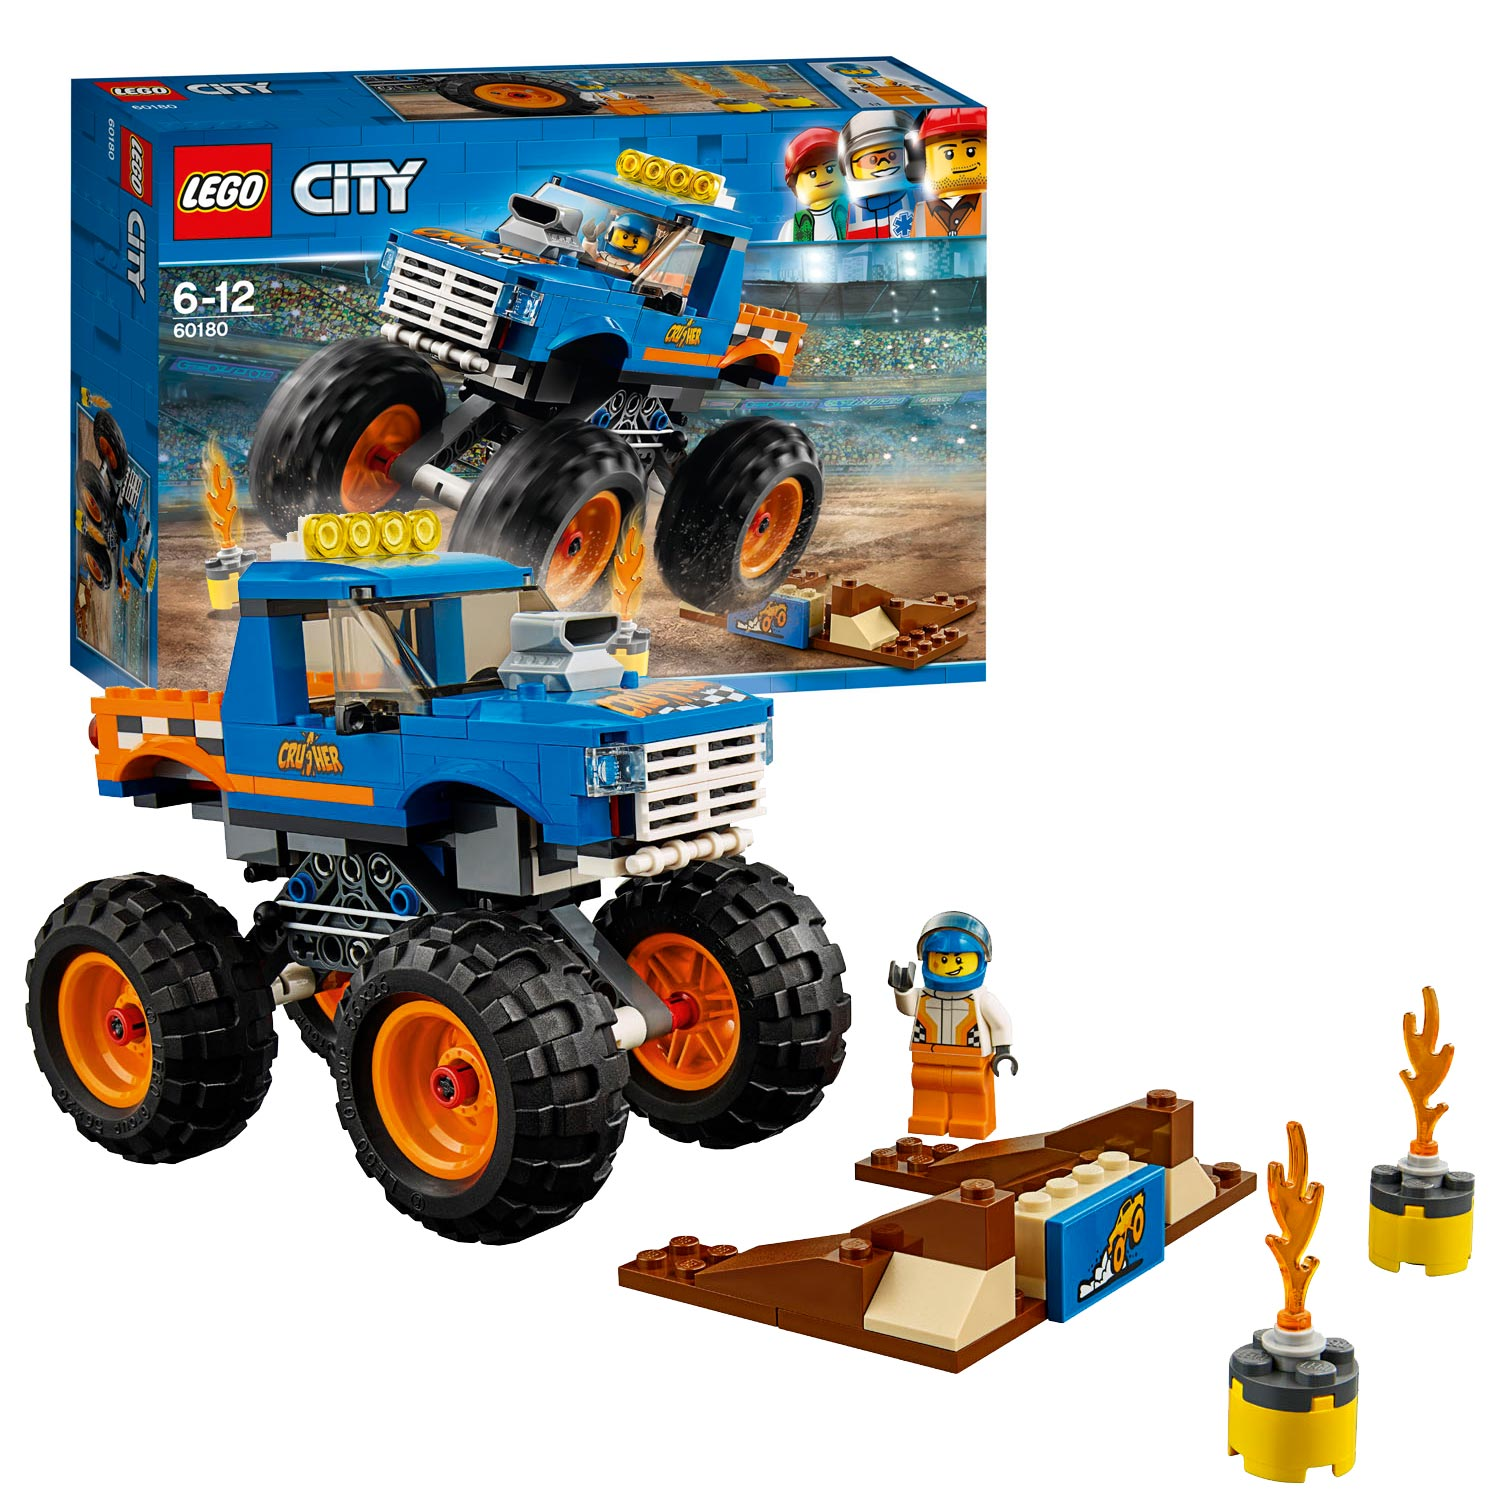 LEGO City 60180 Monstertruck